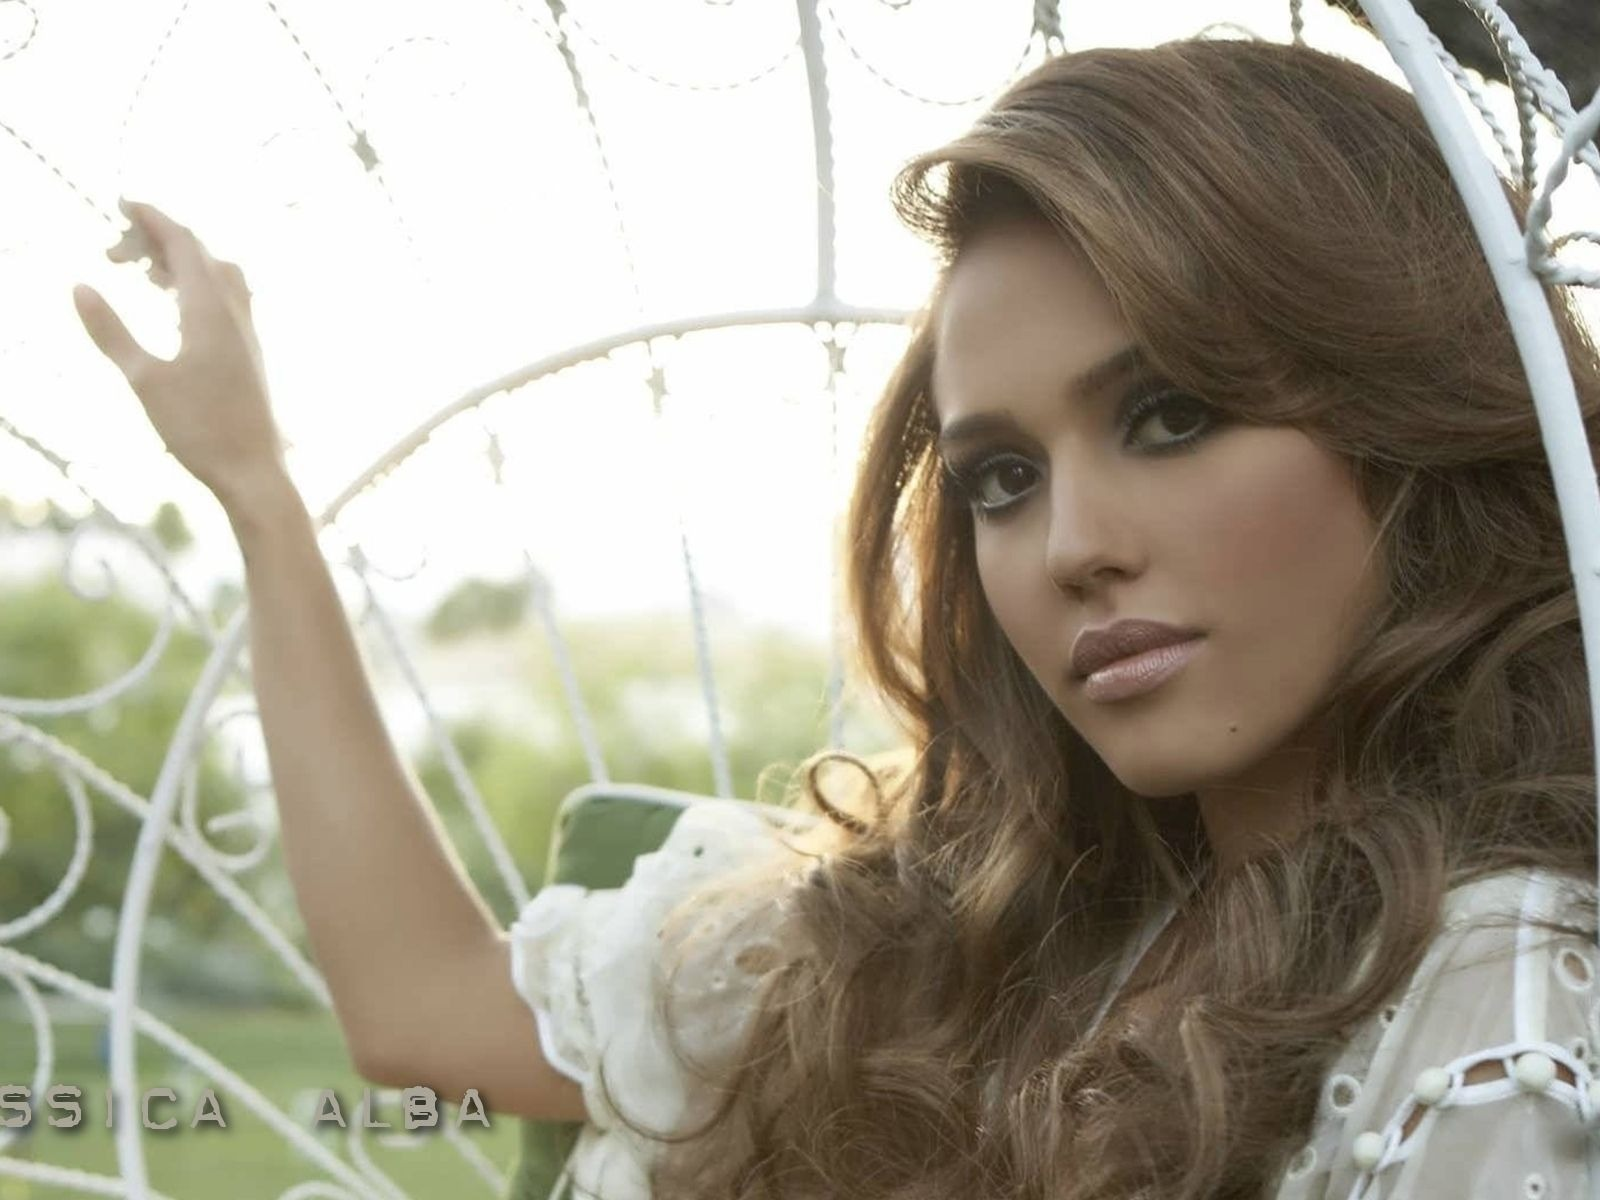 Jessica Alba #020 - 1600x1200 Wallpapers Pictures Photos Images